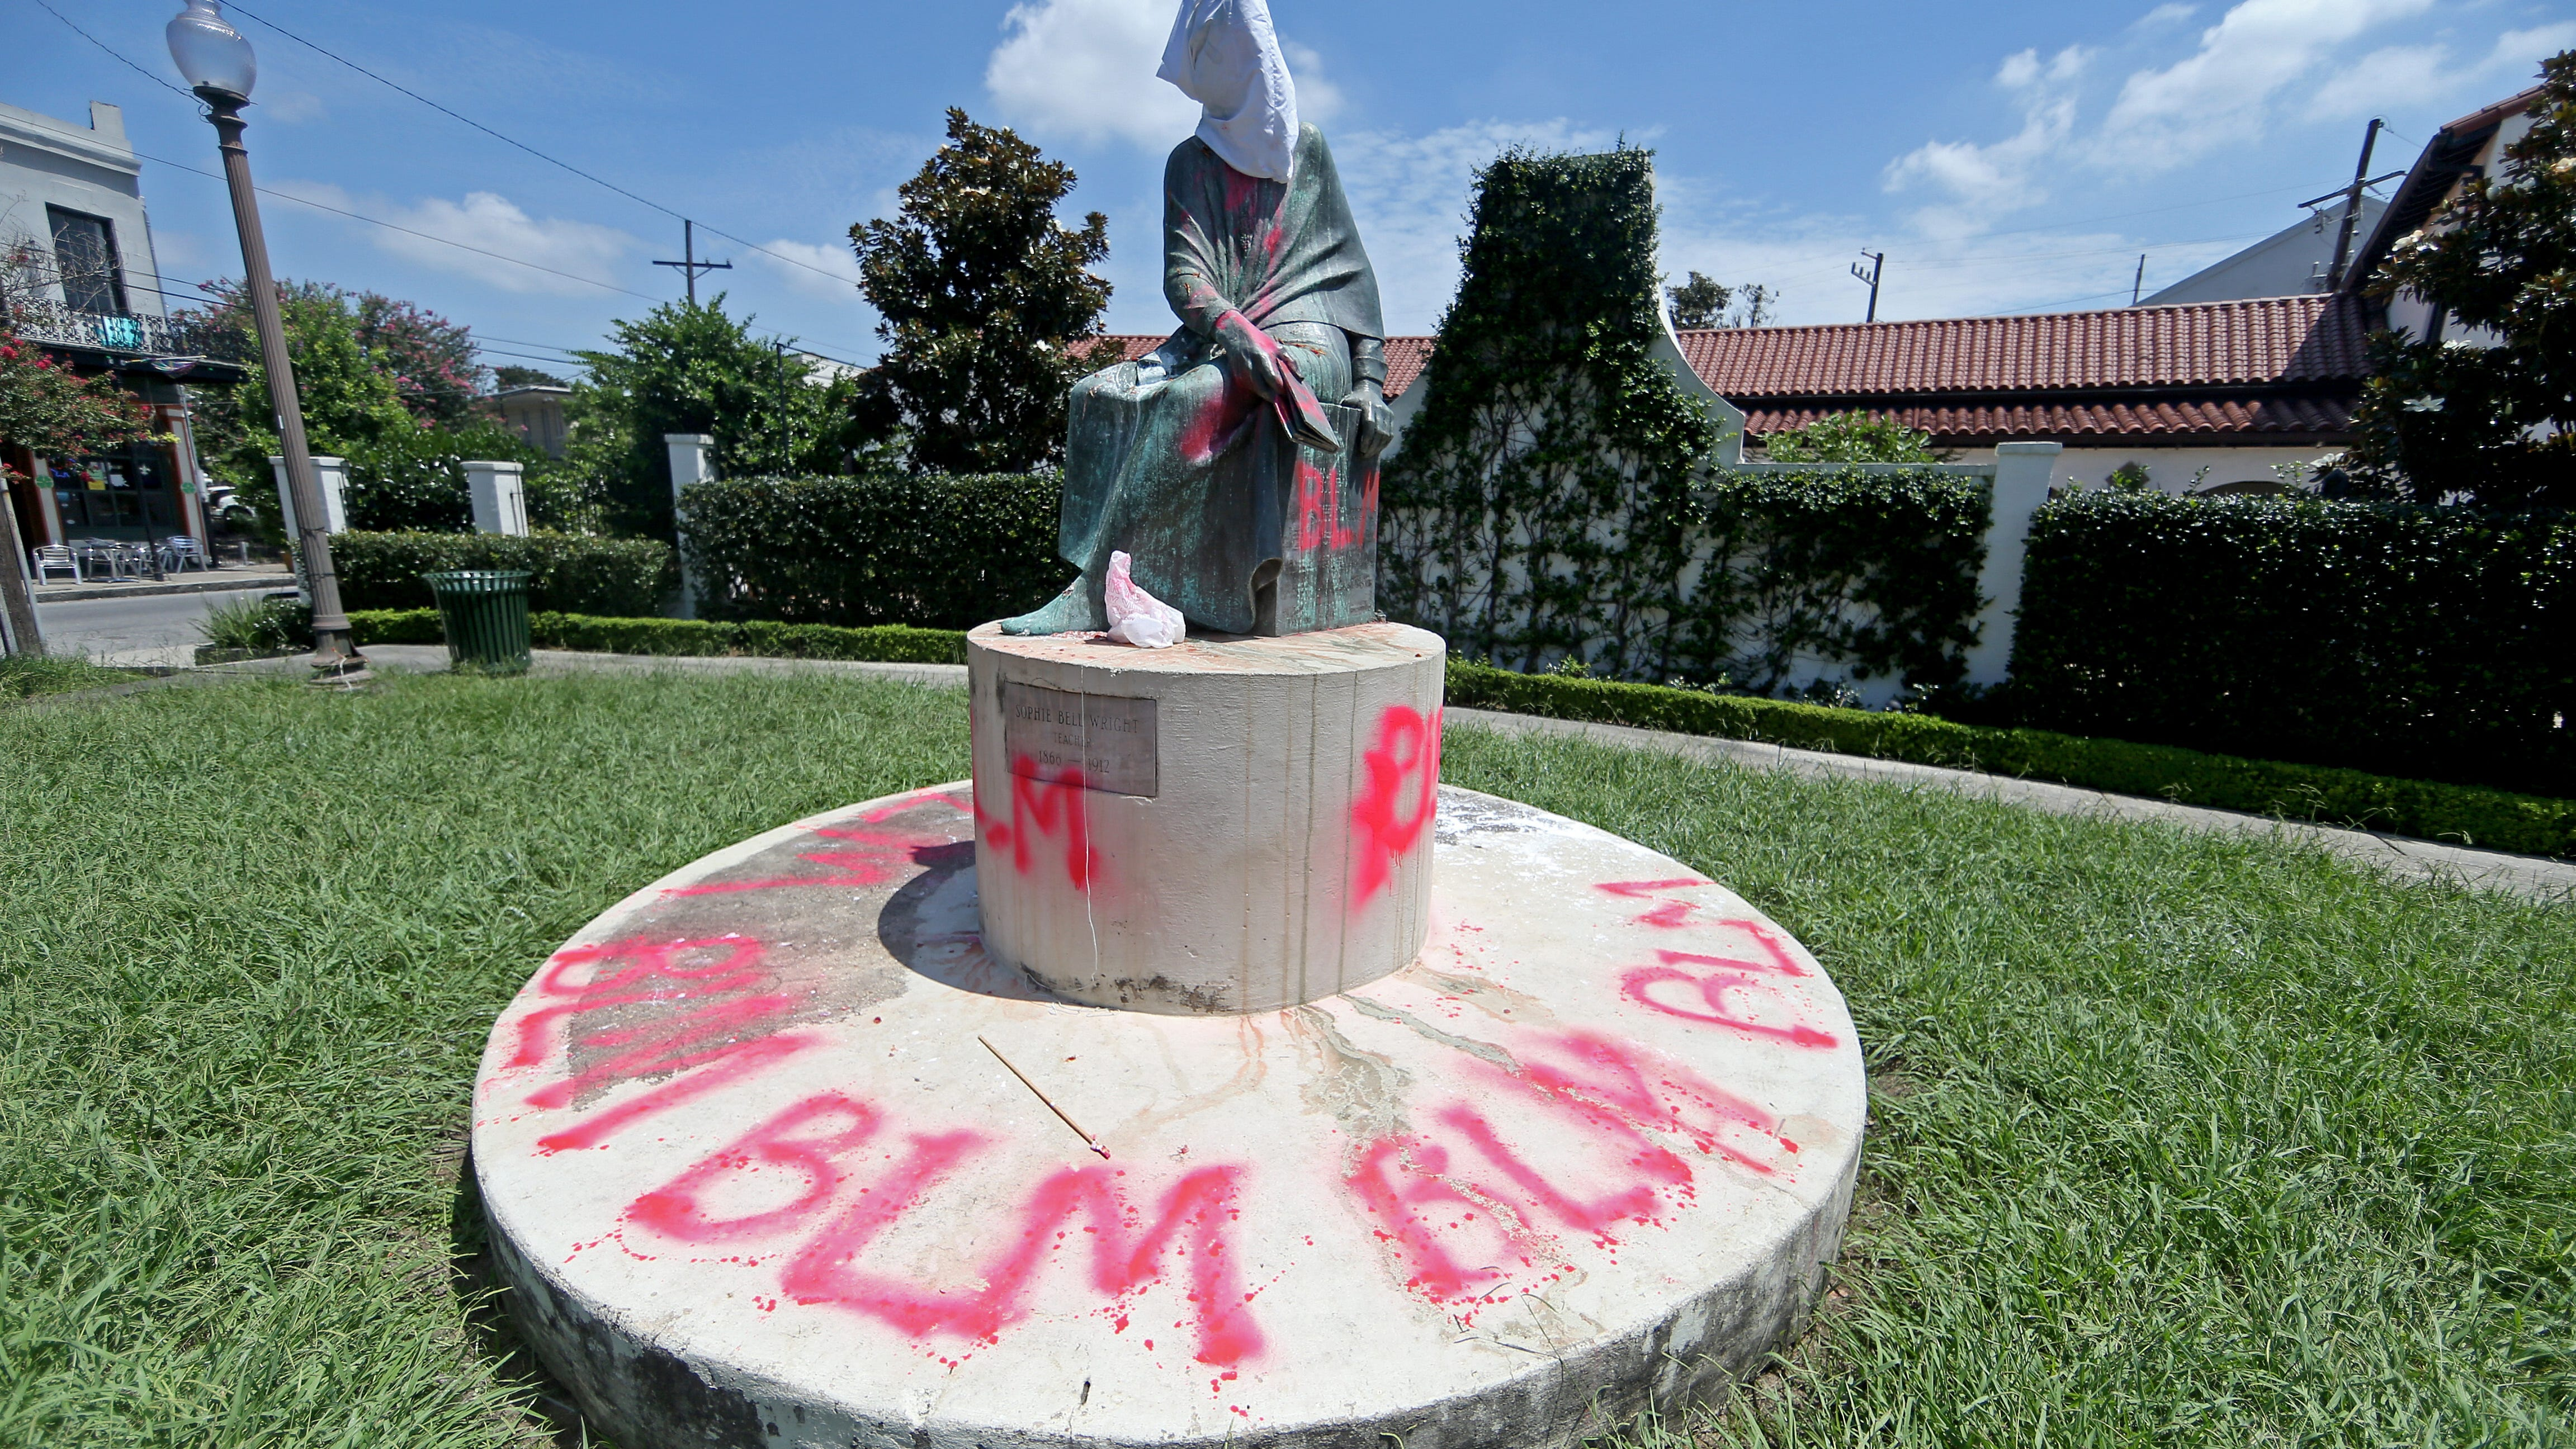 A confederate monument with graffiti and a sack over the statue's head